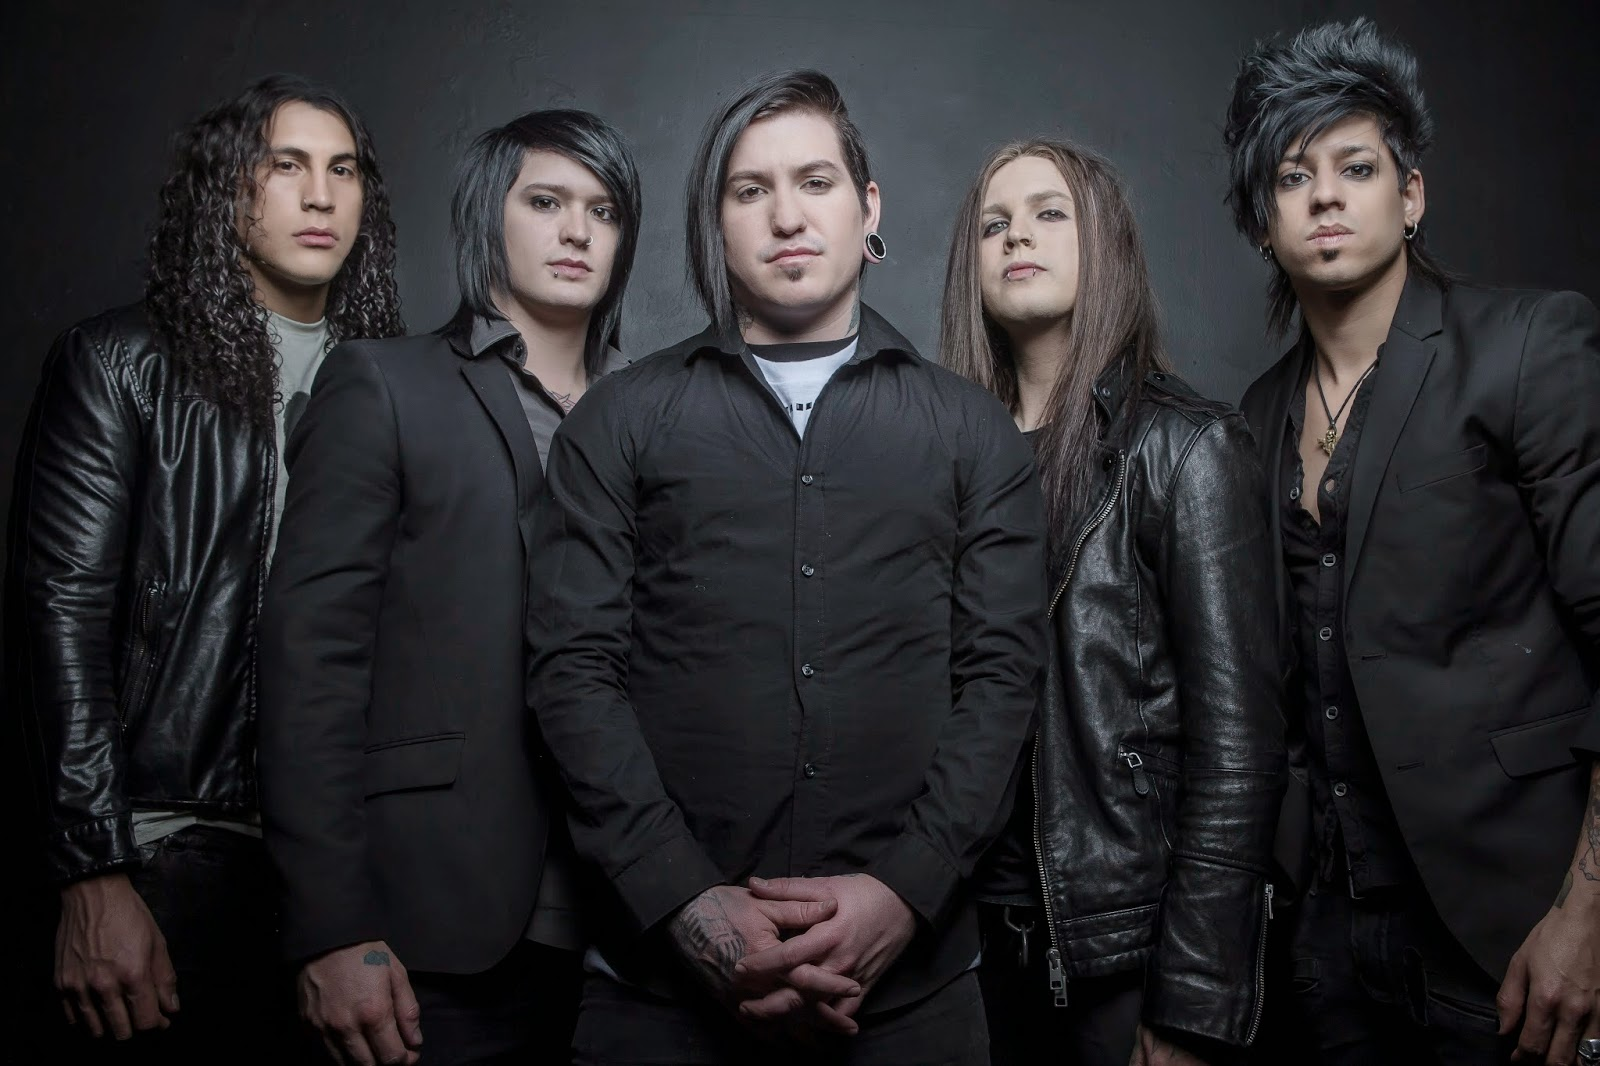 Escape The Fate announce new song 'Just a Memory' and new album details!